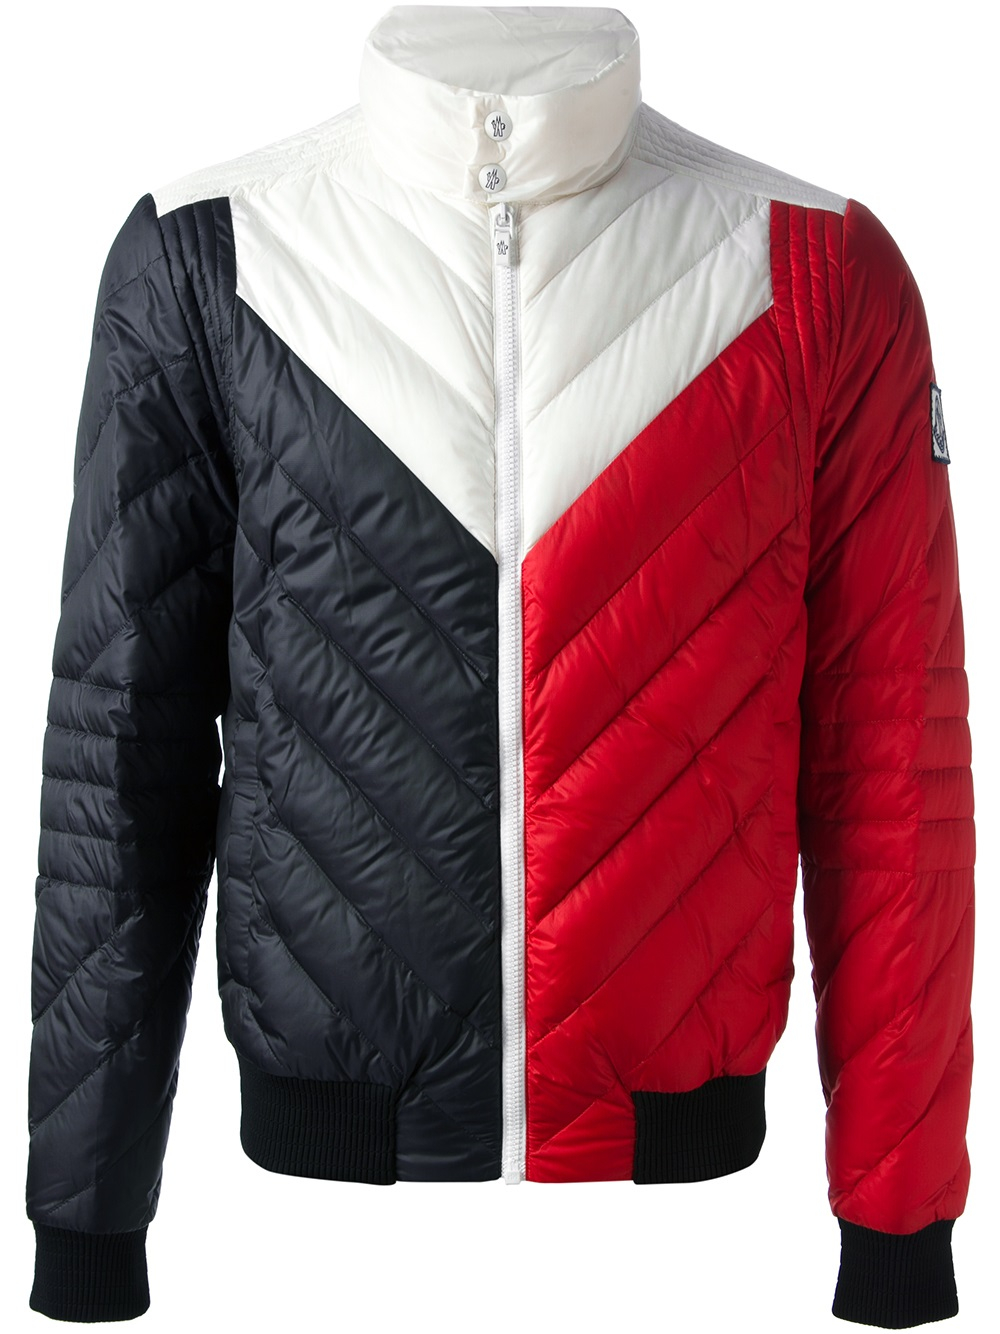 a182db695 Lyst - Moncler Gamme Bleu Quilted Jacket in Blue for Men